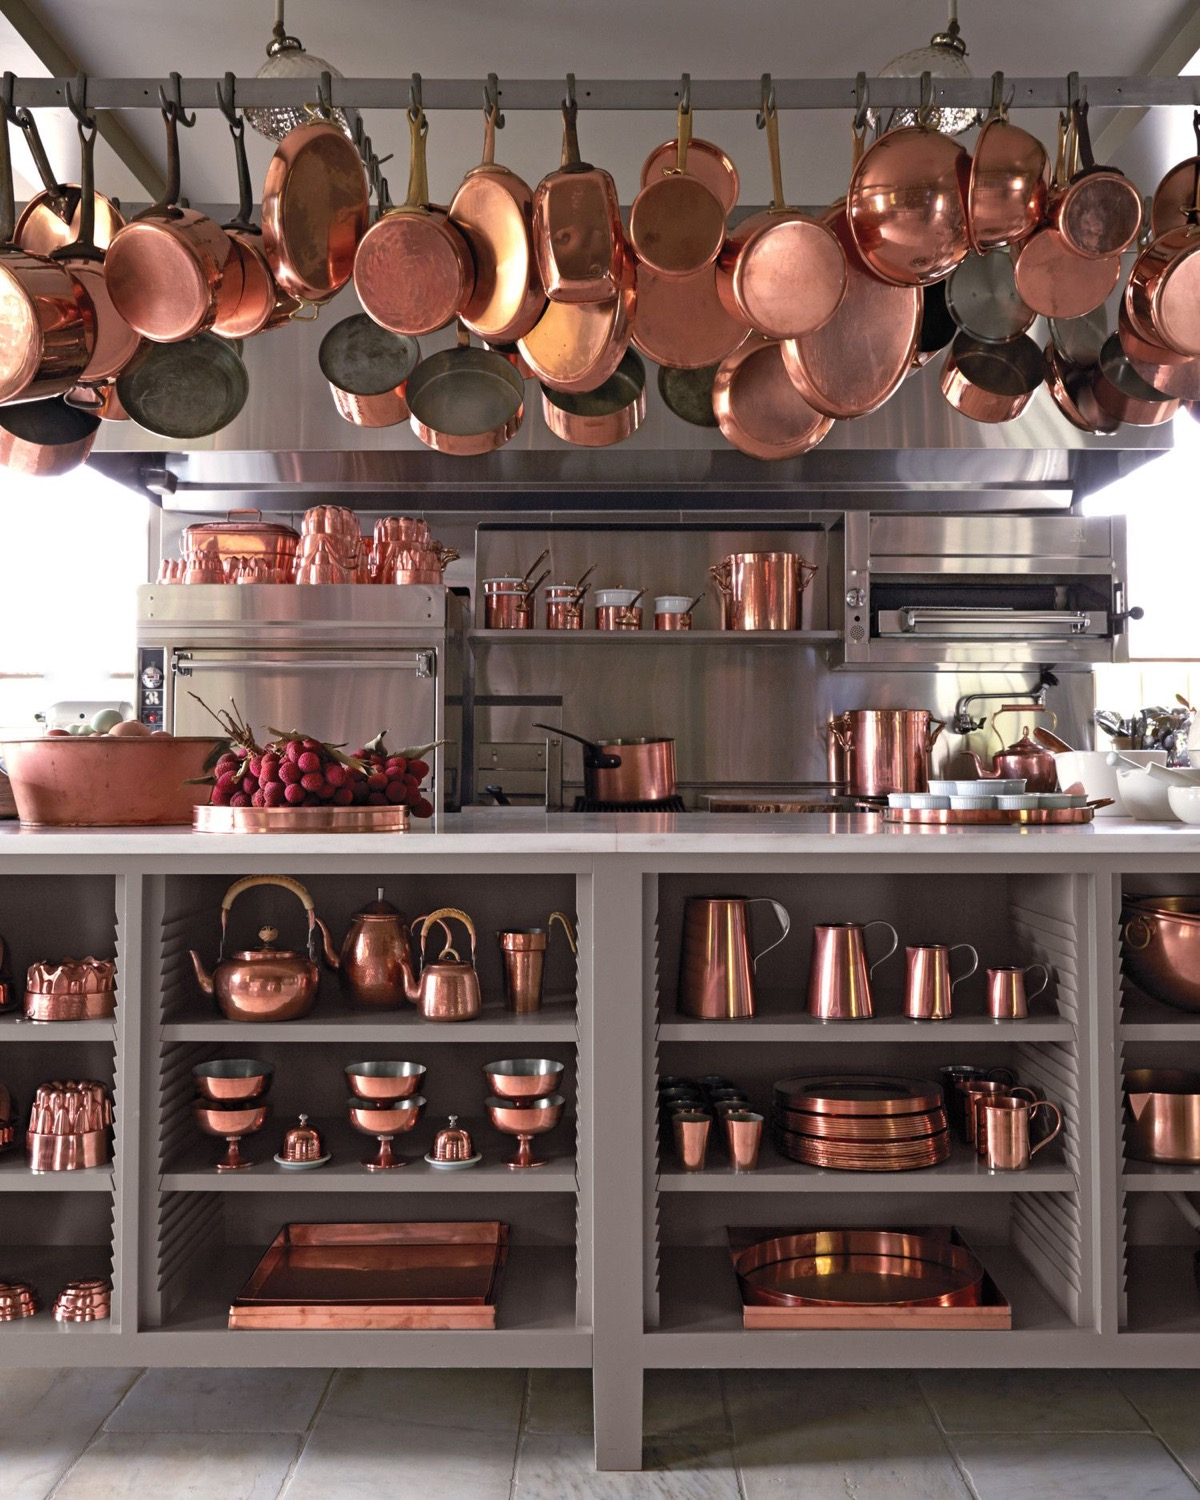 36 Copper Kitchens With Images, Tips And Accessories To